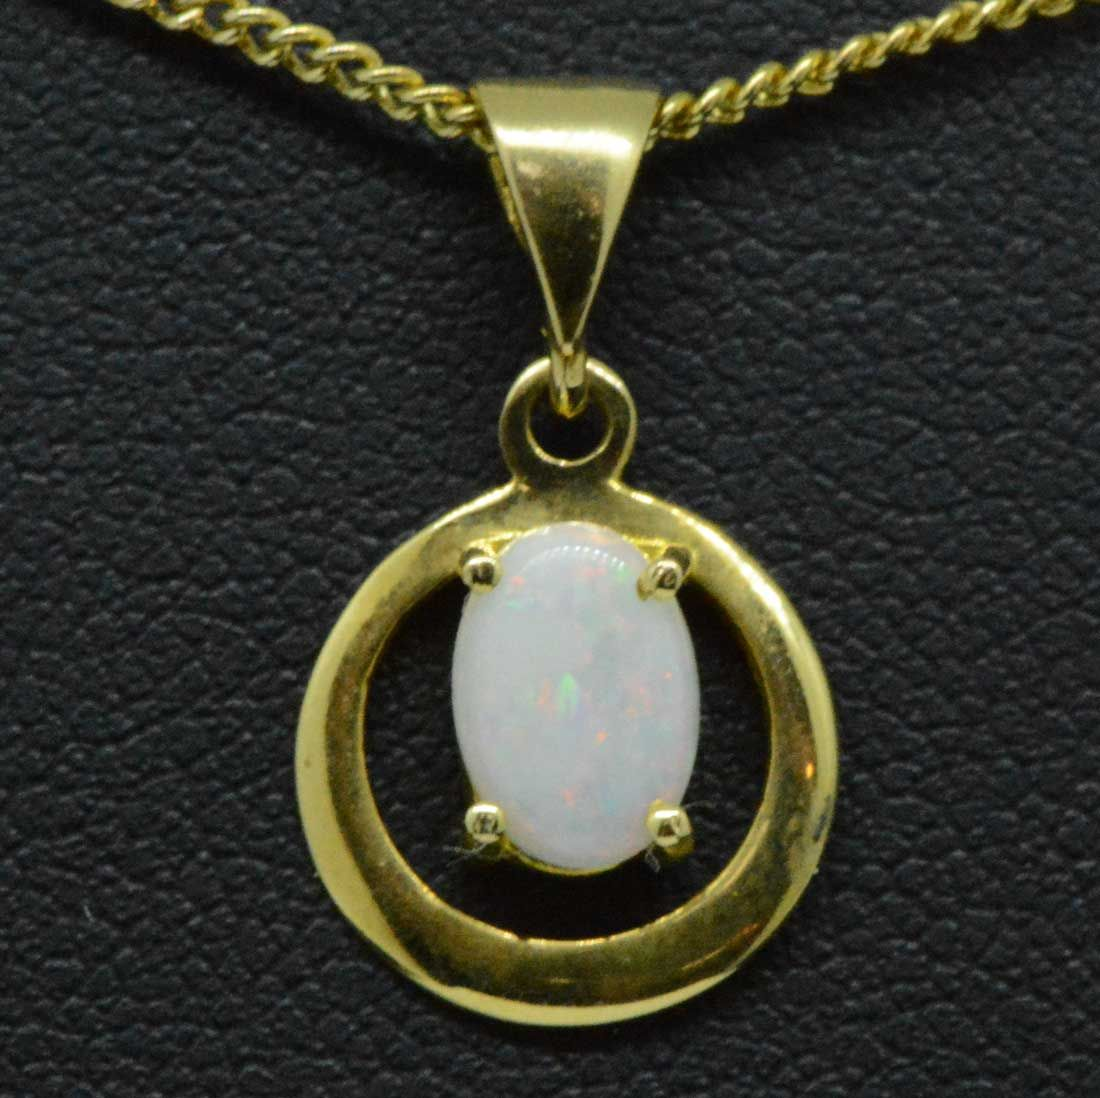 18ct yellow gold circle pendant with a solid opal